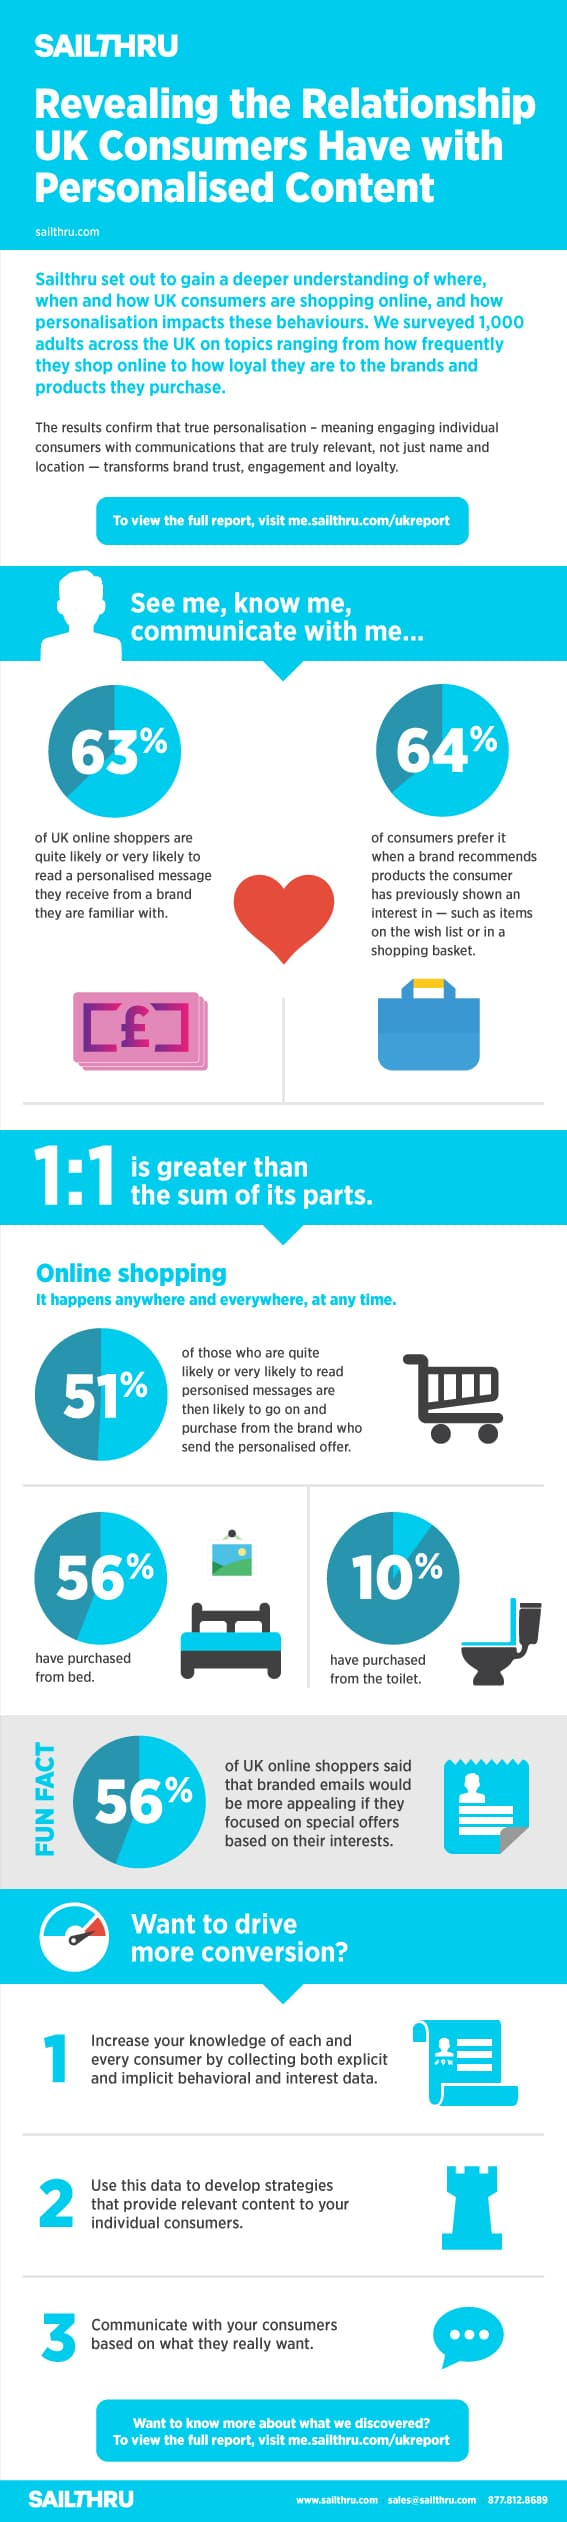 SAIL_026_UK_personalisation_infographic_042414a